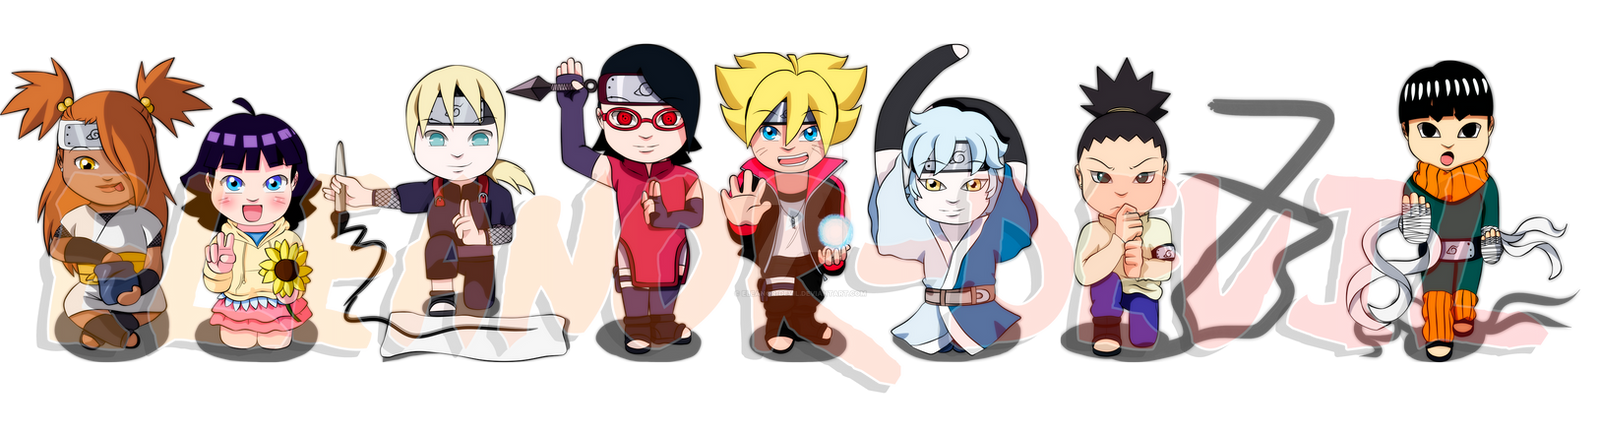 Image Gallery naruto next generation